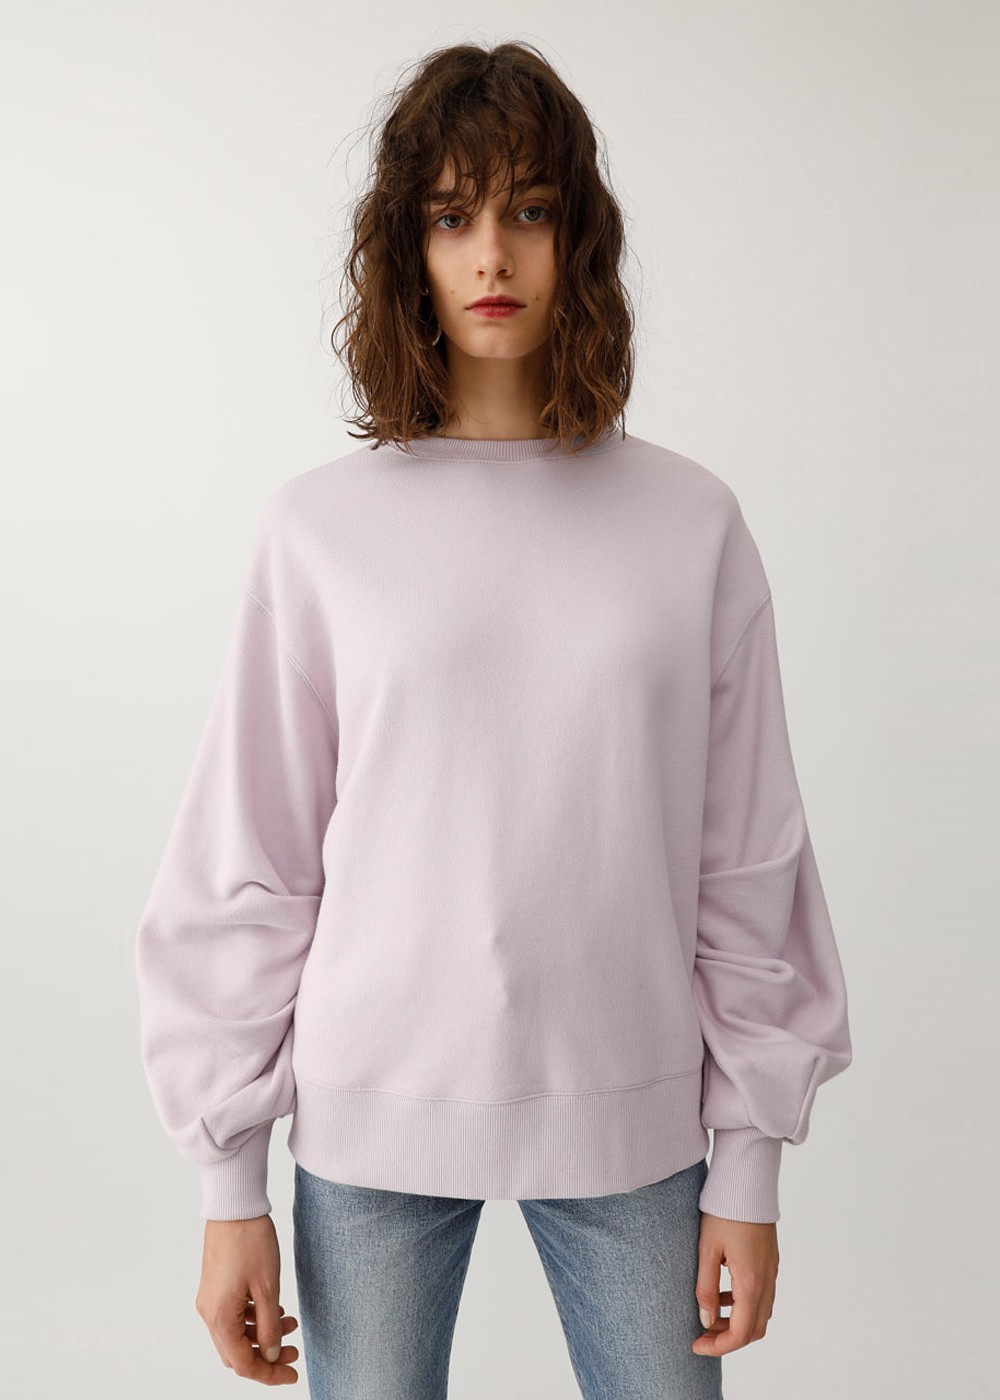 【最大60%OFF】VOLUME SLEEVE POJ|L/PUR|カットソー|MOUSSY